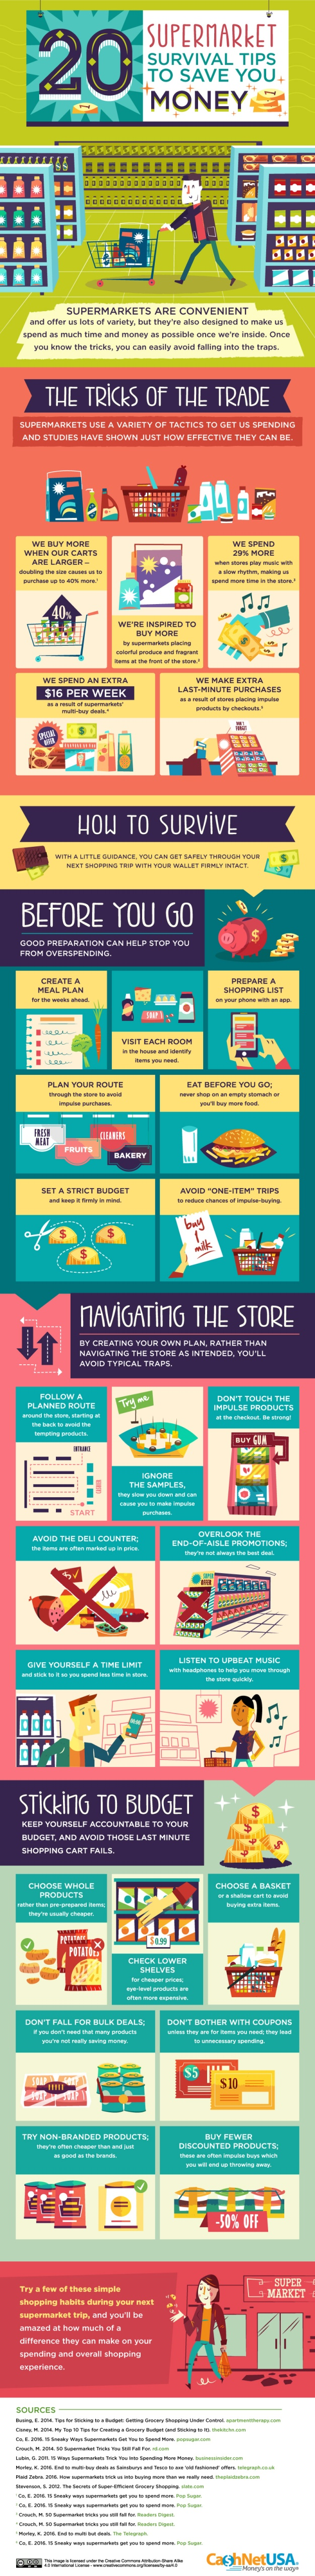 20 Supermarket Survival Tips to Save You Money